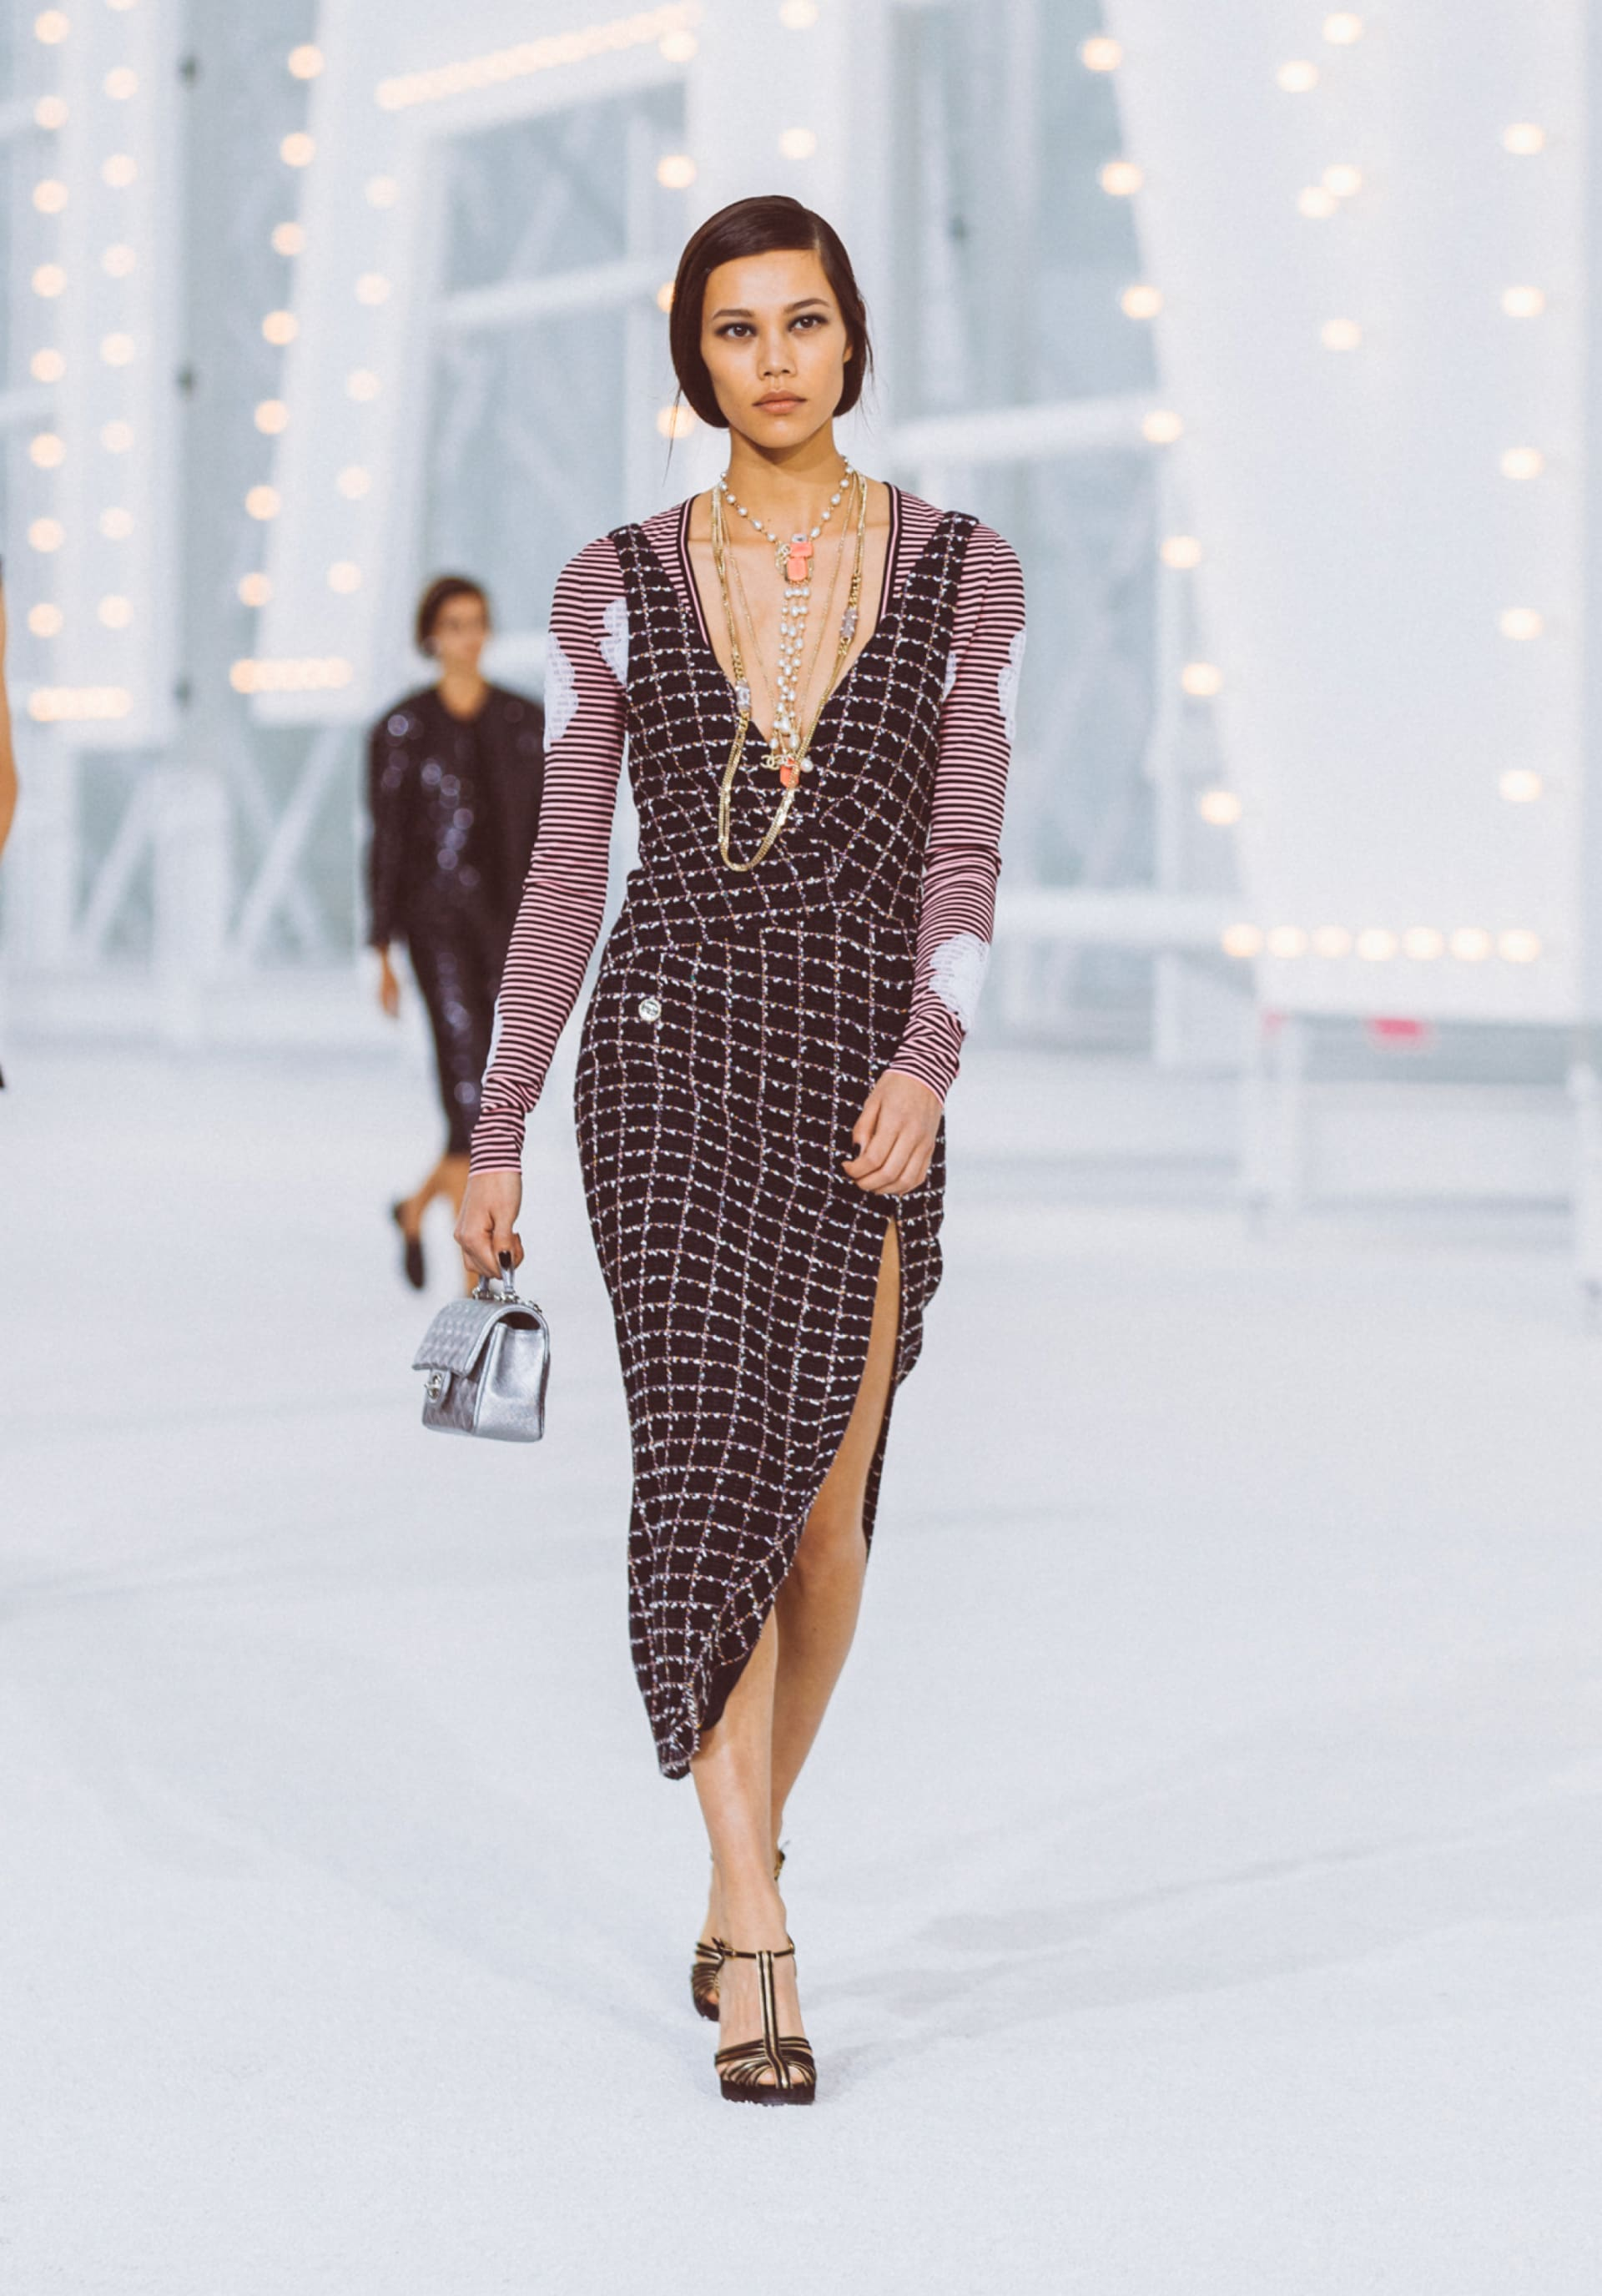 View 1 - Look16 - Spring-Summer 2021 - see full sized version